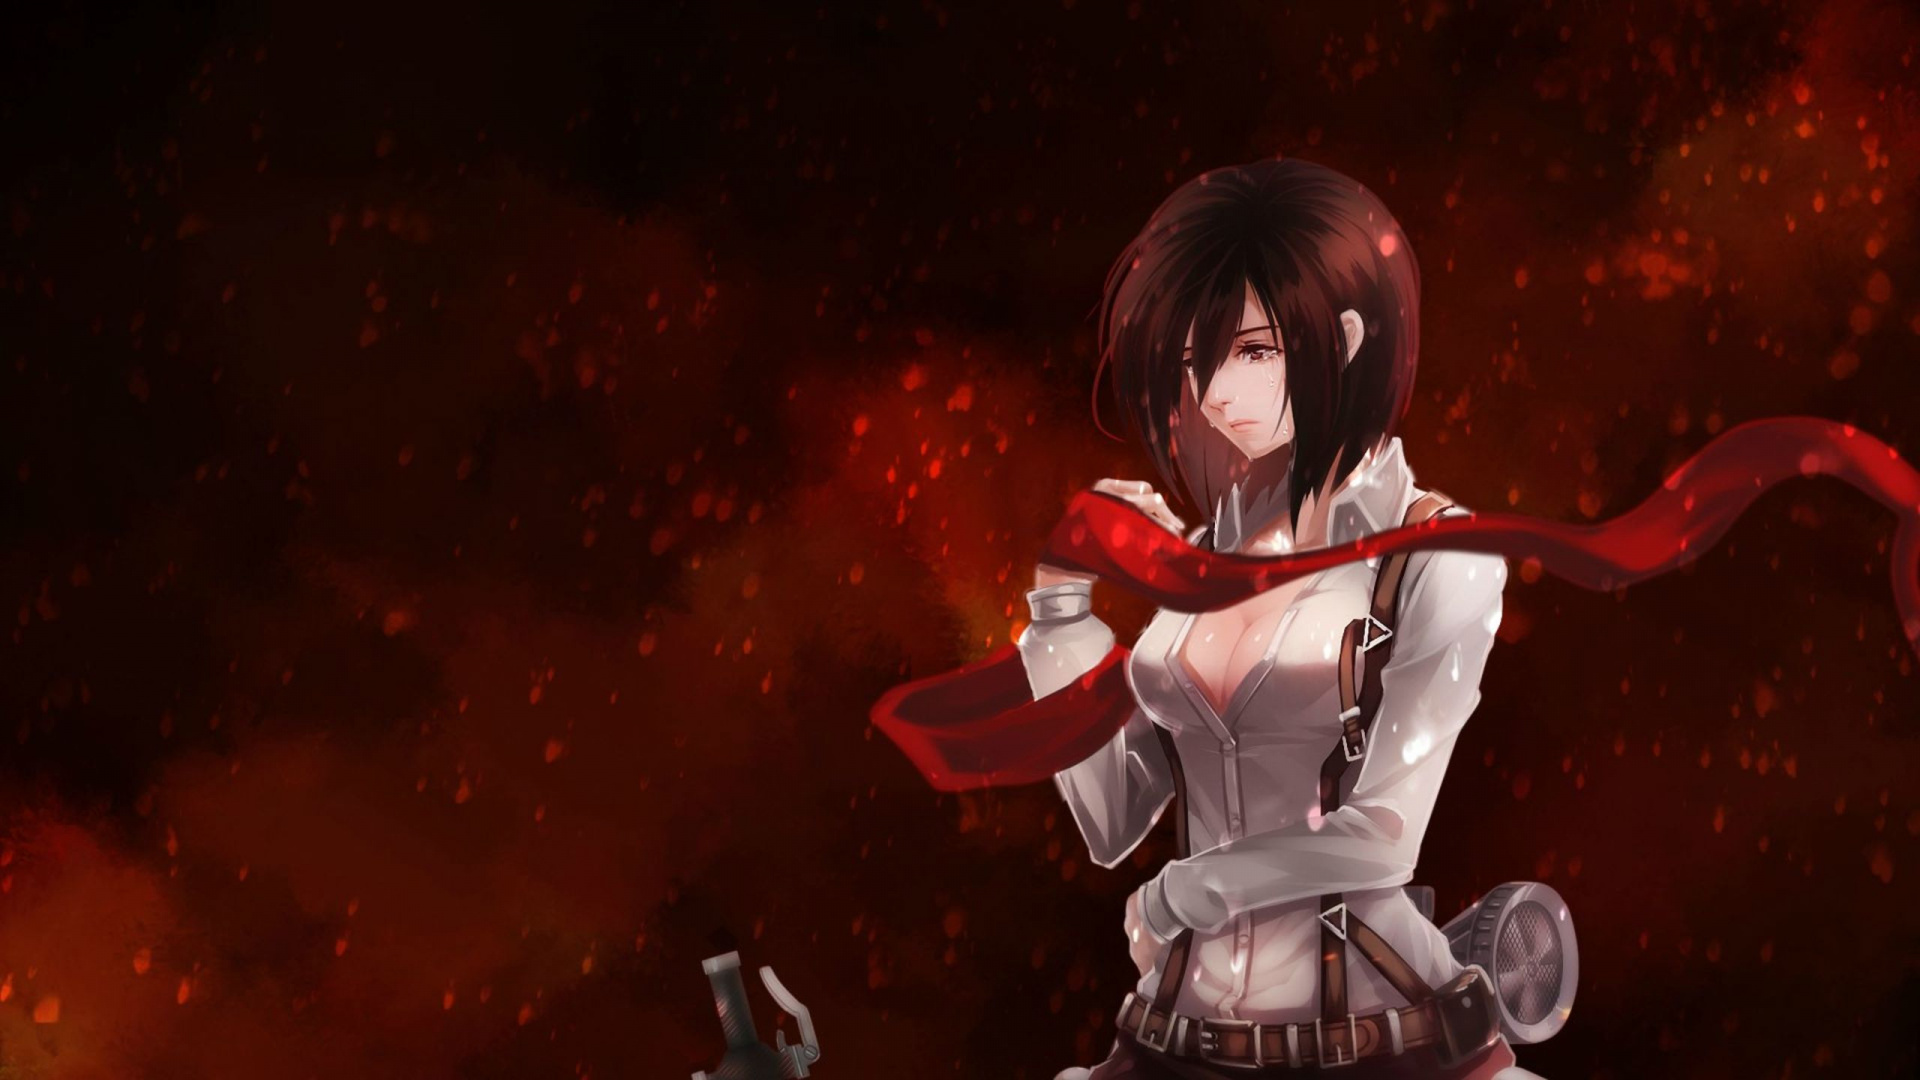 Mikasa Wallpaper Hd Posted By Zoey Mercado